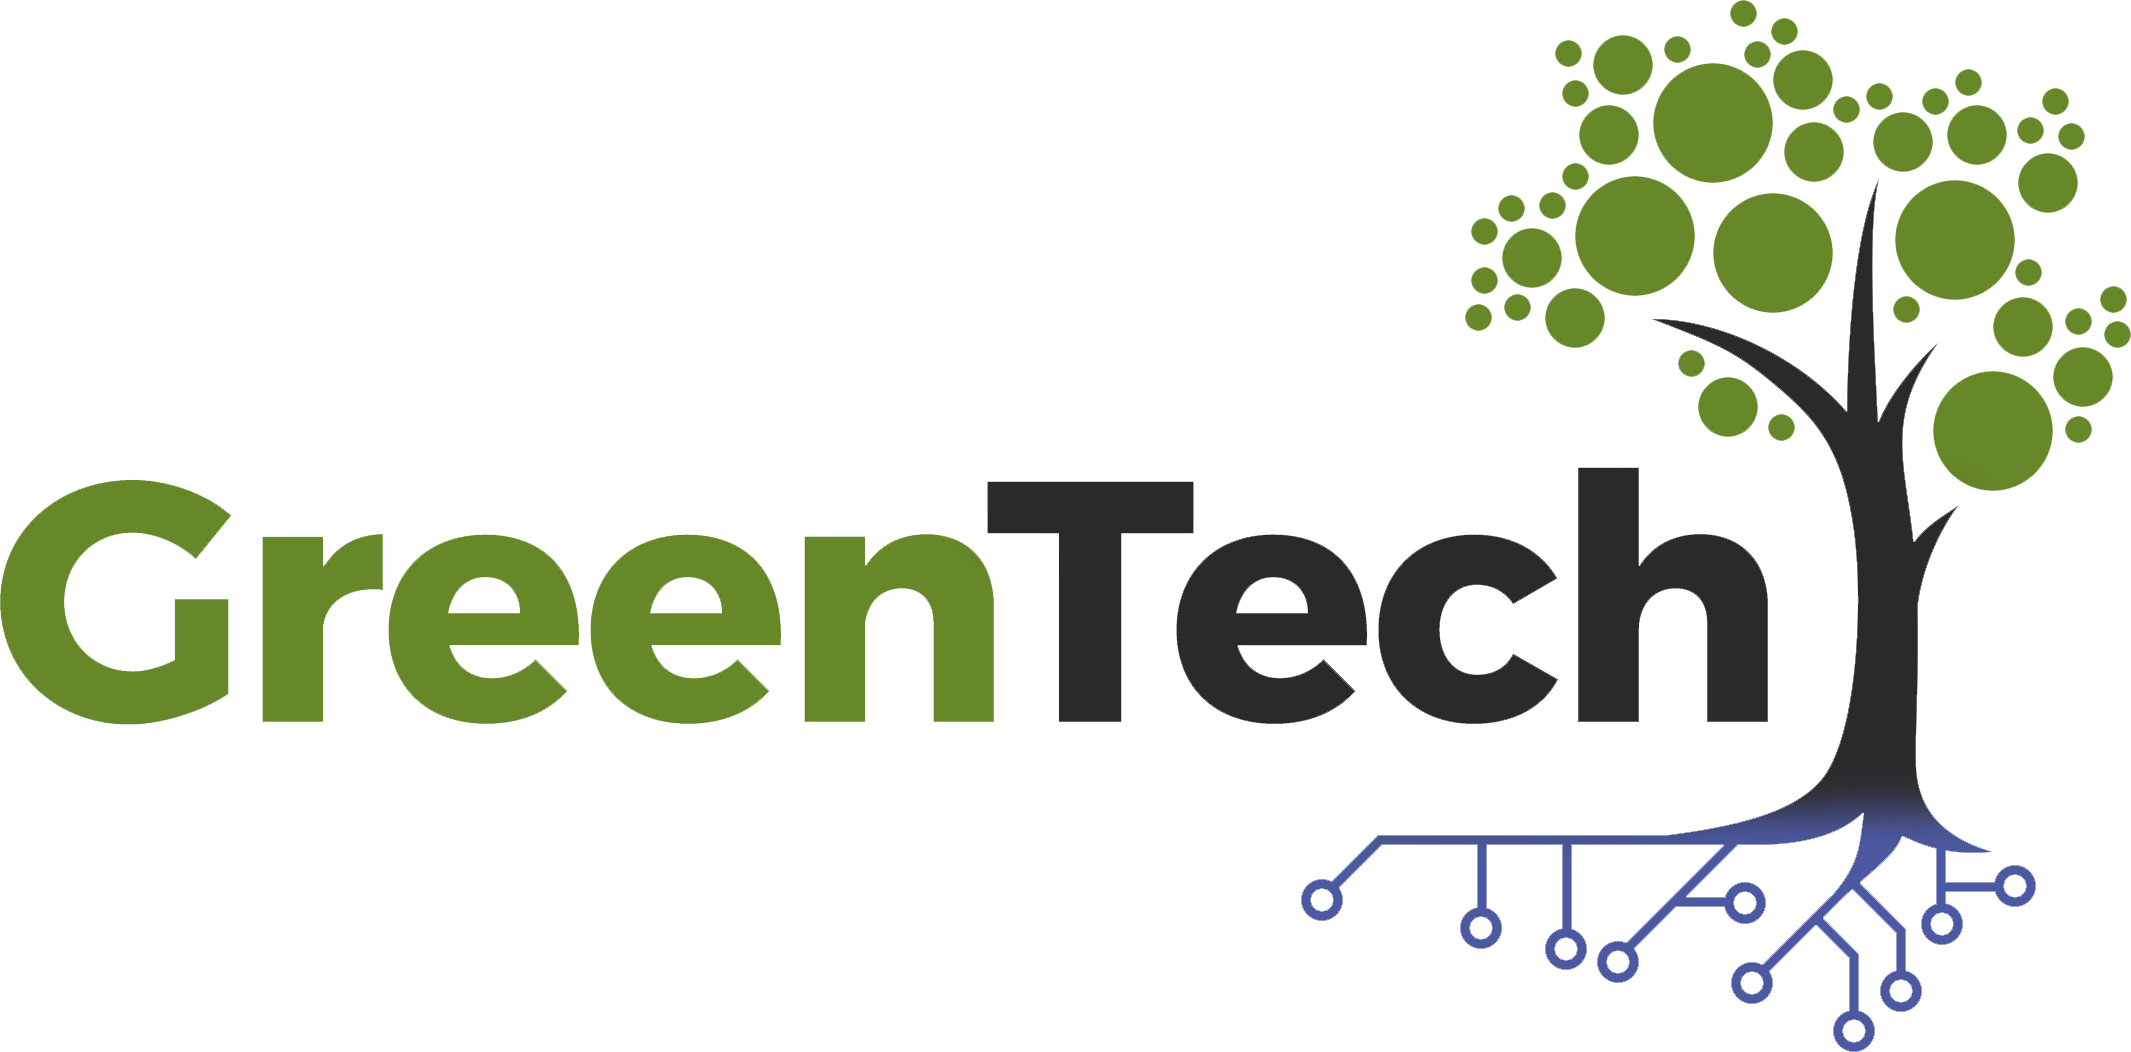 Greentech logo transparent copy